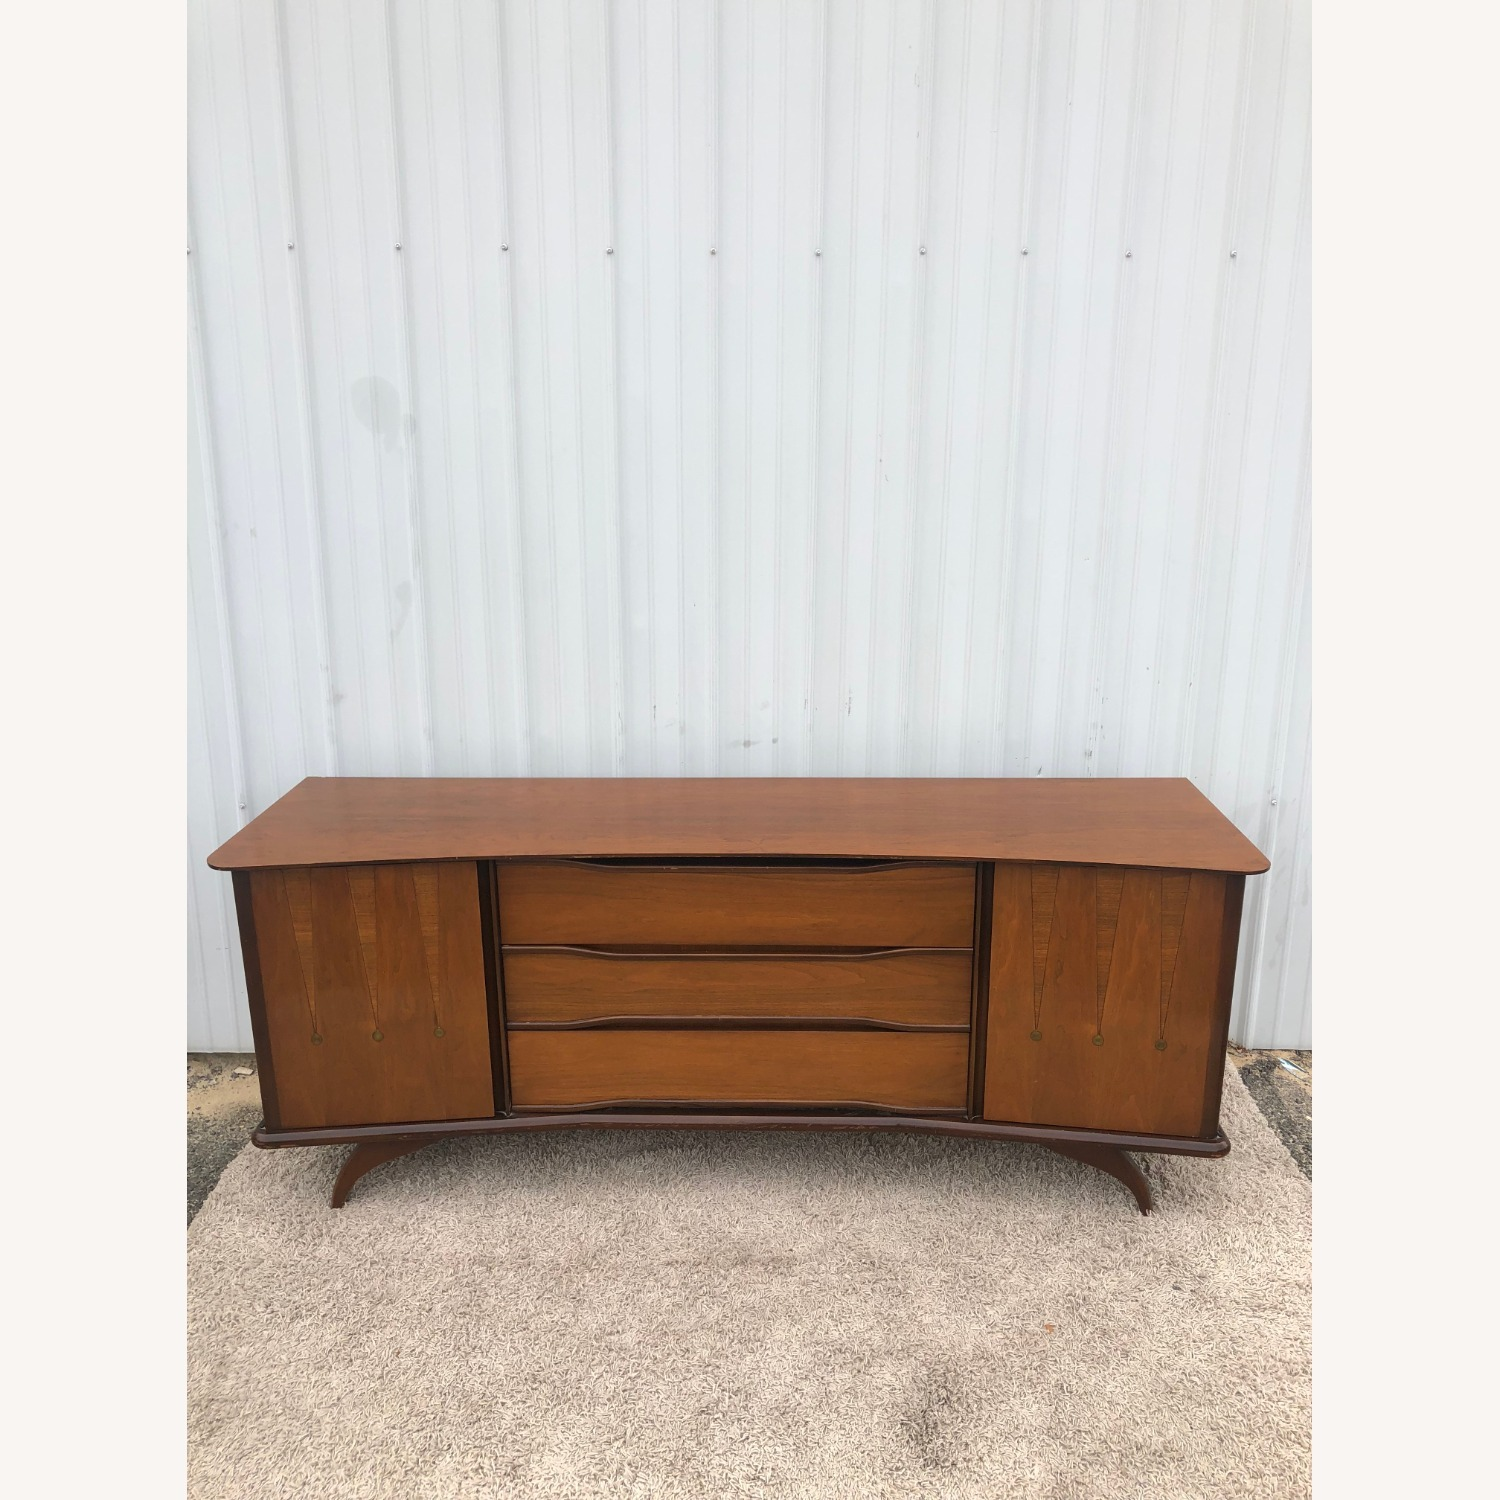 Mid Century Lowboy Dresser with Brasss Accents - image-3